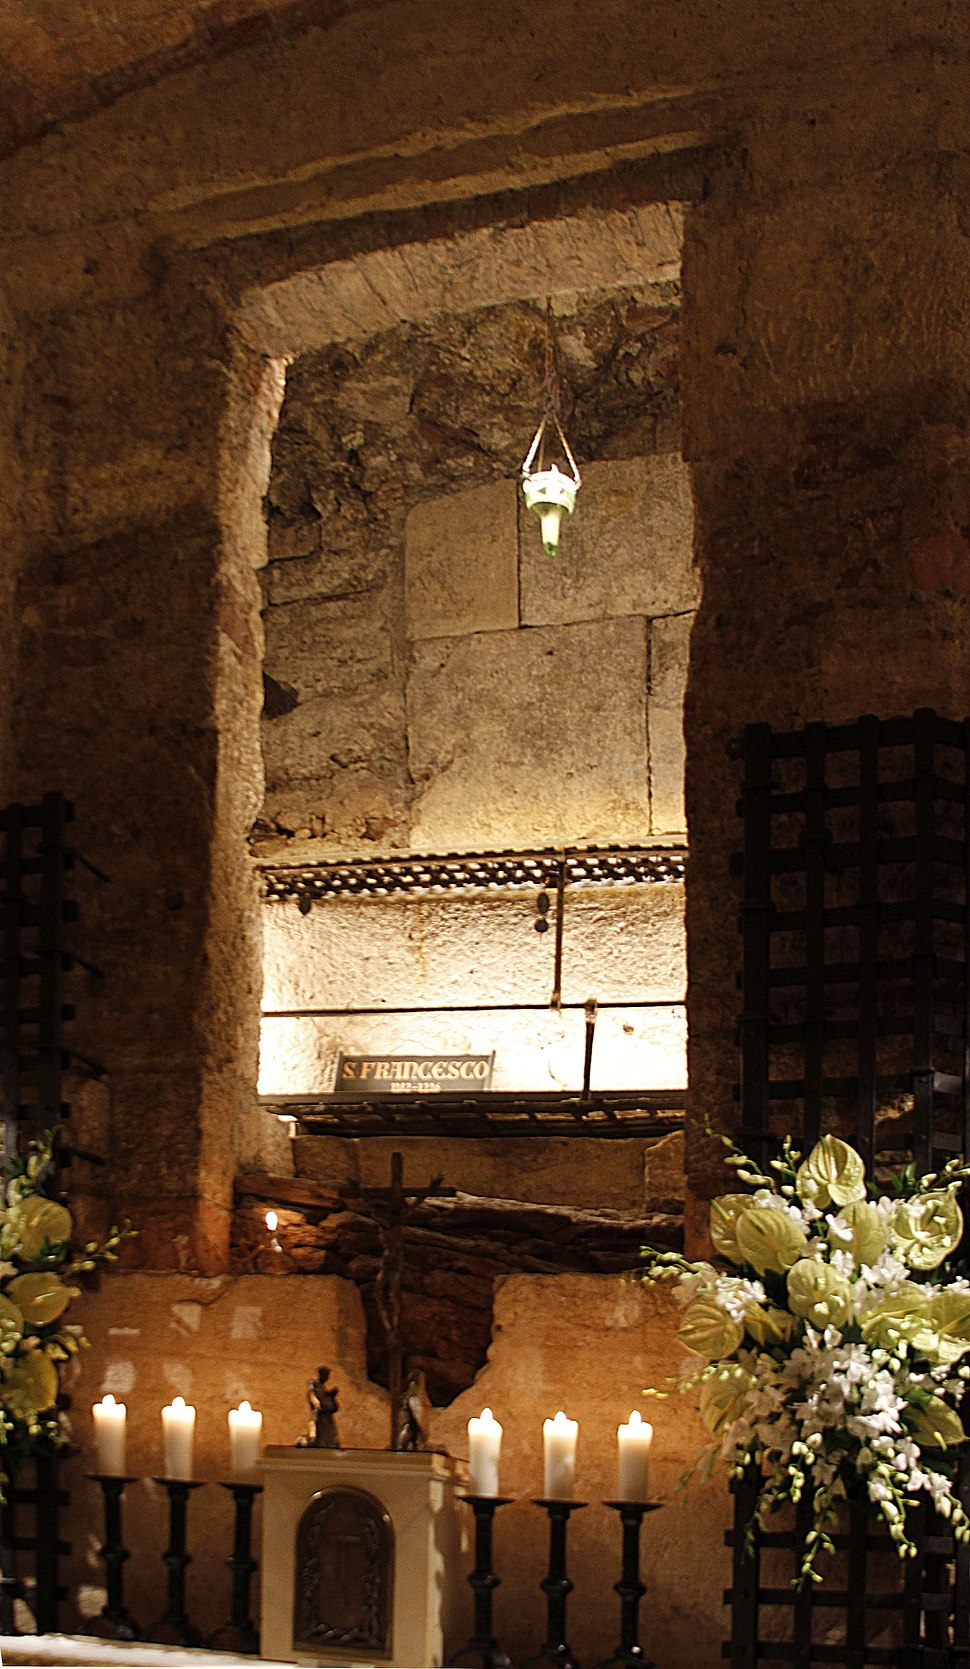 Tomb of Saint Francis - Basilica di San Francesco - Assisi 2016